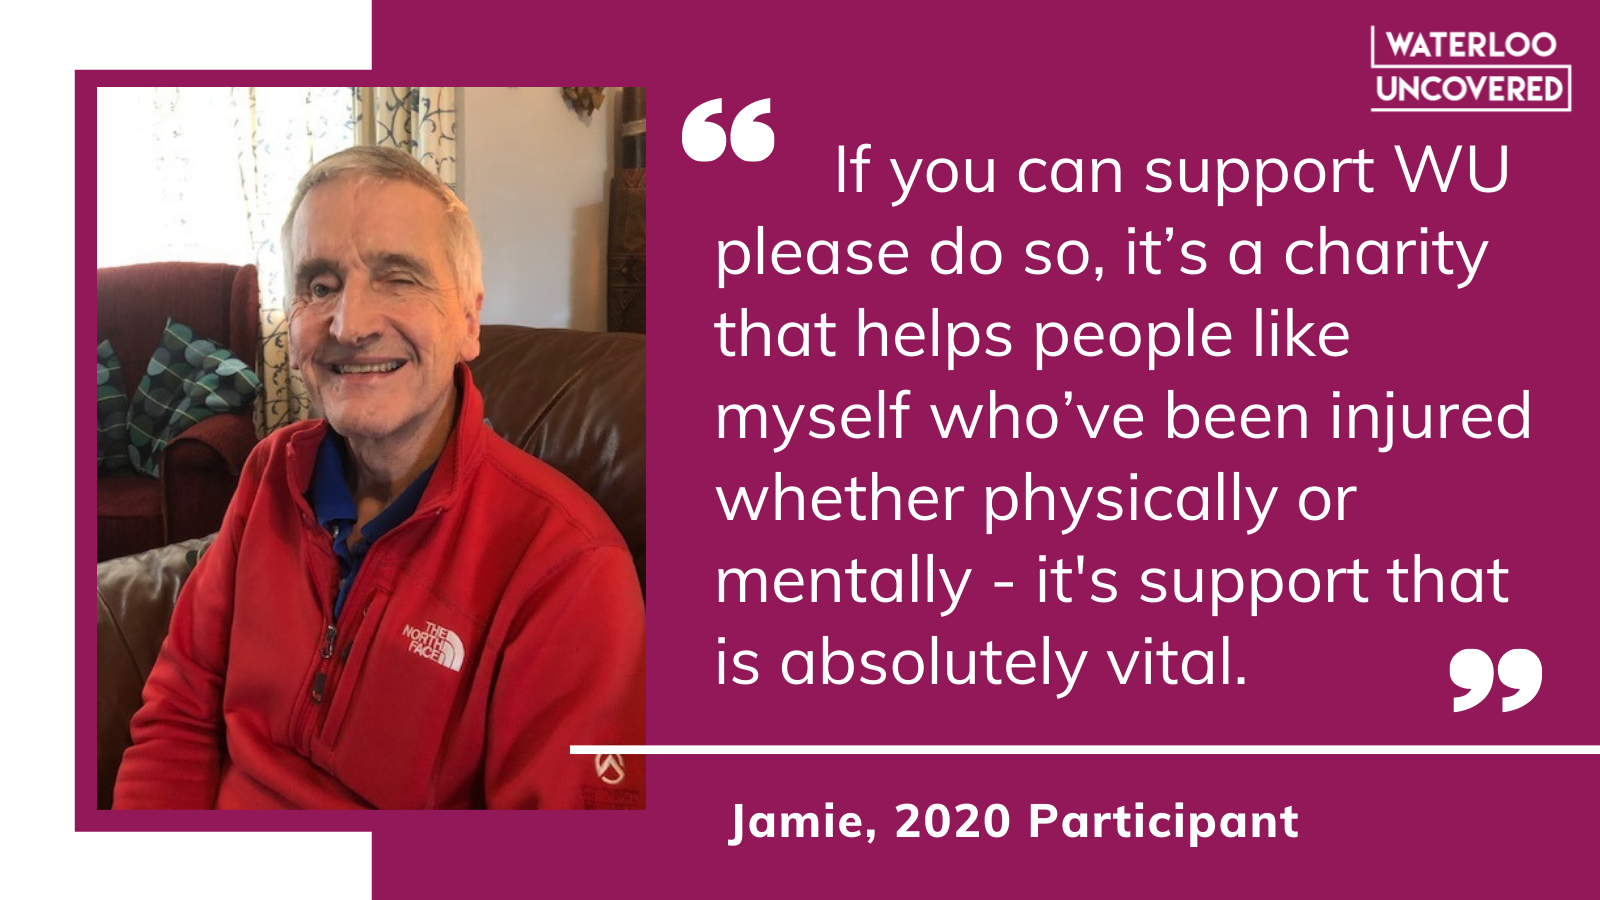 If you can support WU please do so, it's a charity that helps people like myself who've been injured whether physically or mentally. It's support that is absolutely vital. Quote from Jamie, a 2020 participant.